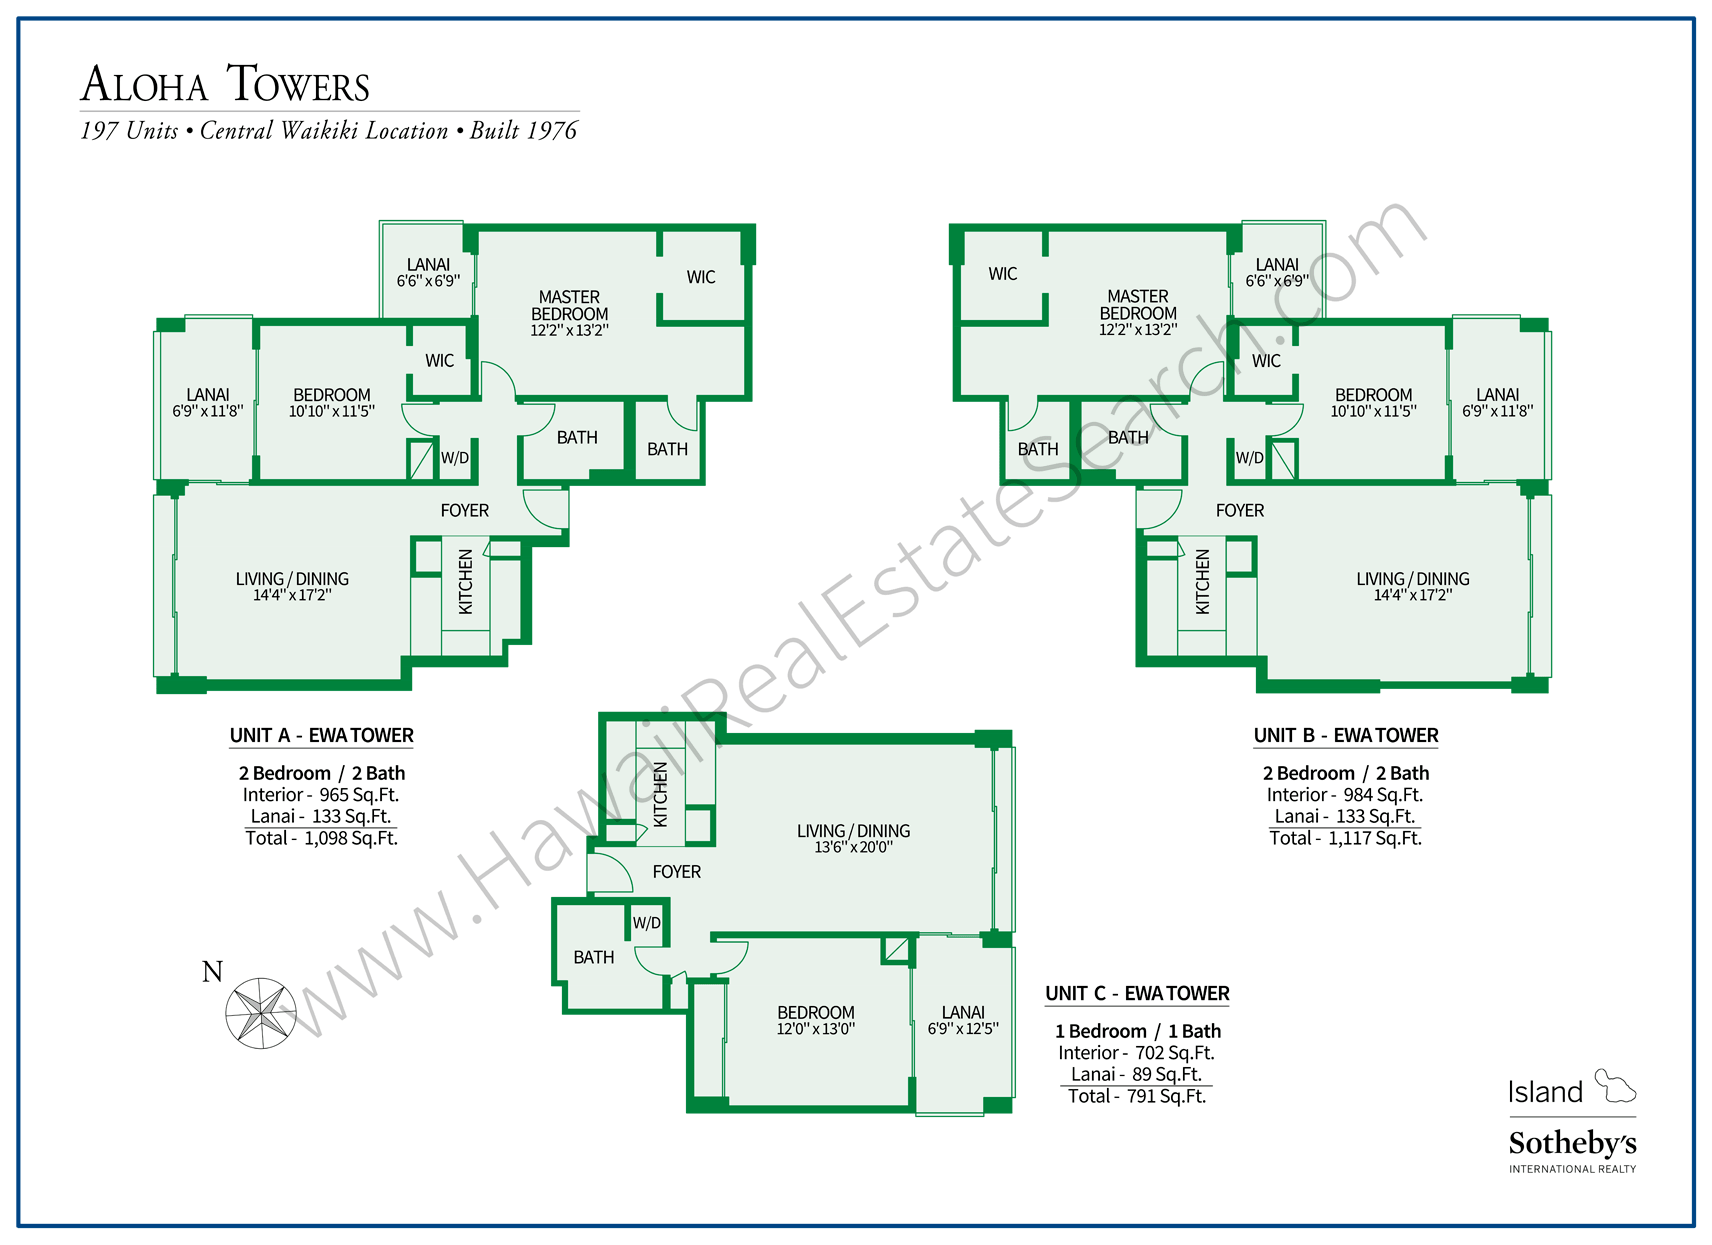 Aloha Towers Floor Plans Set 1